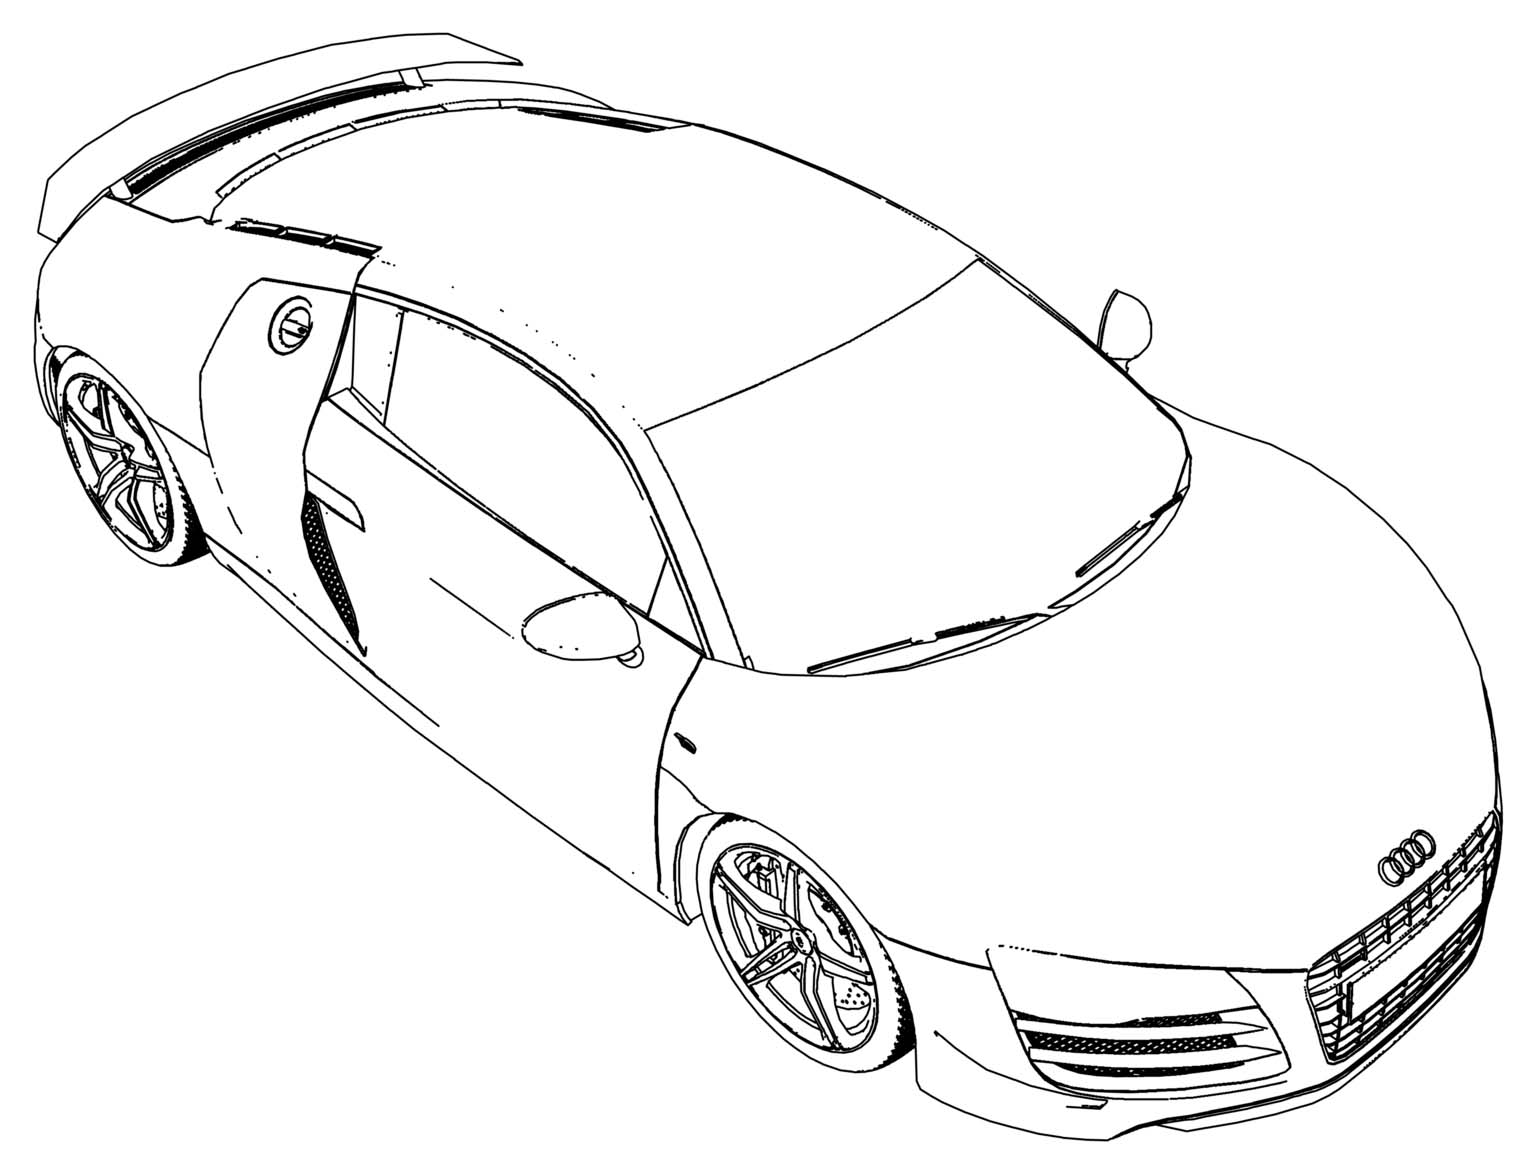 Audi r8 coloring page for Audi r8 coloring pages